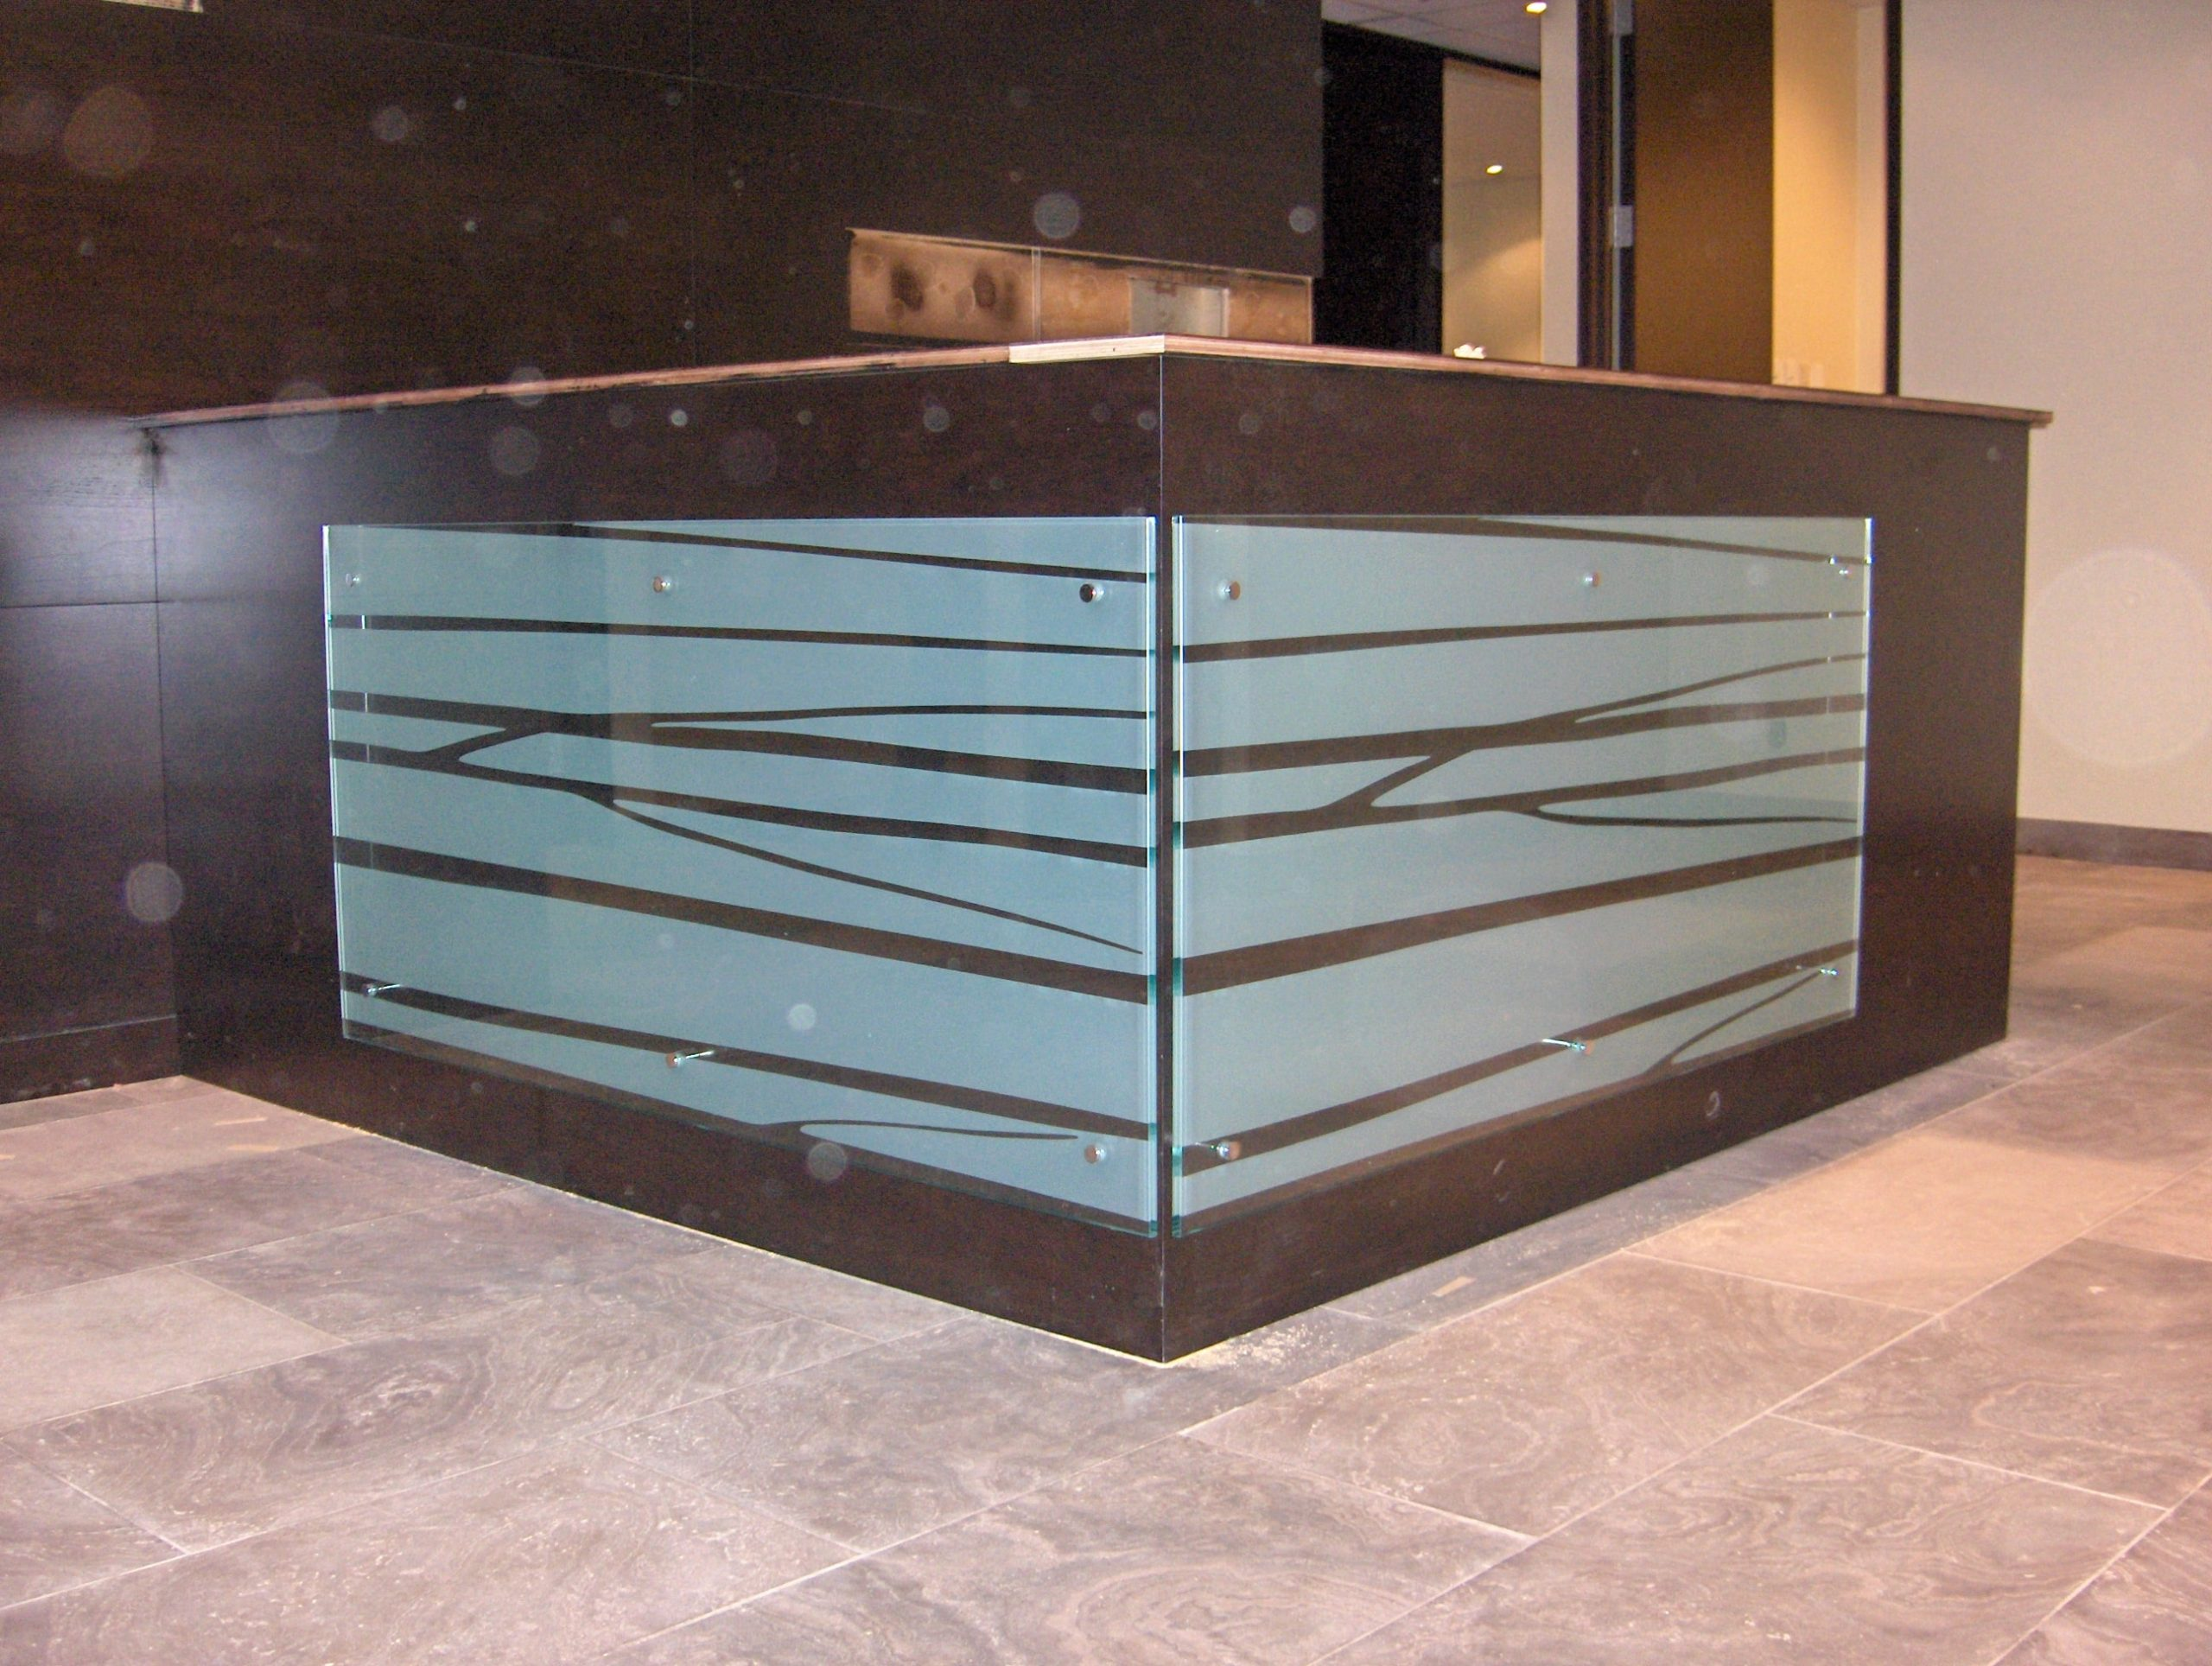 Reception desk with architectural film